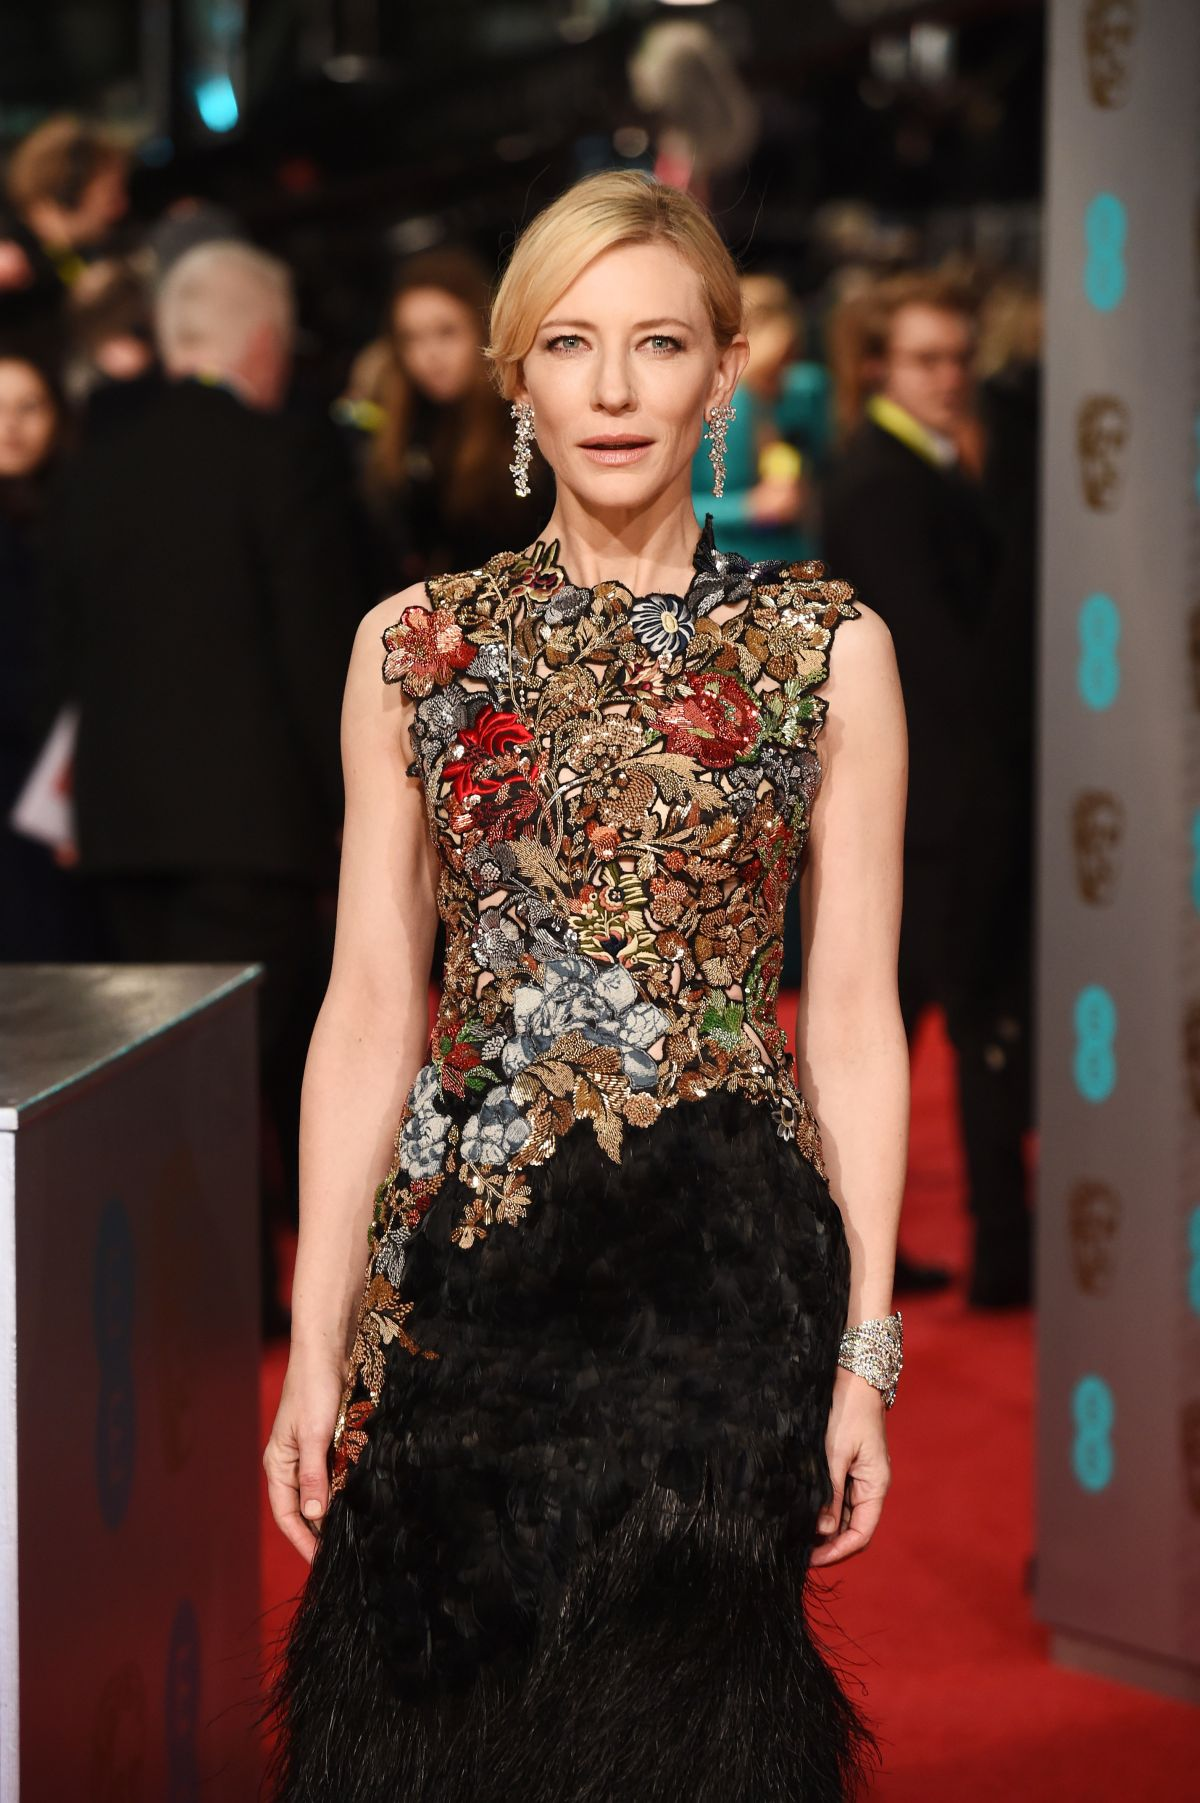 Cate Blanchett at British Academy of Film and Television Arts Awards-2